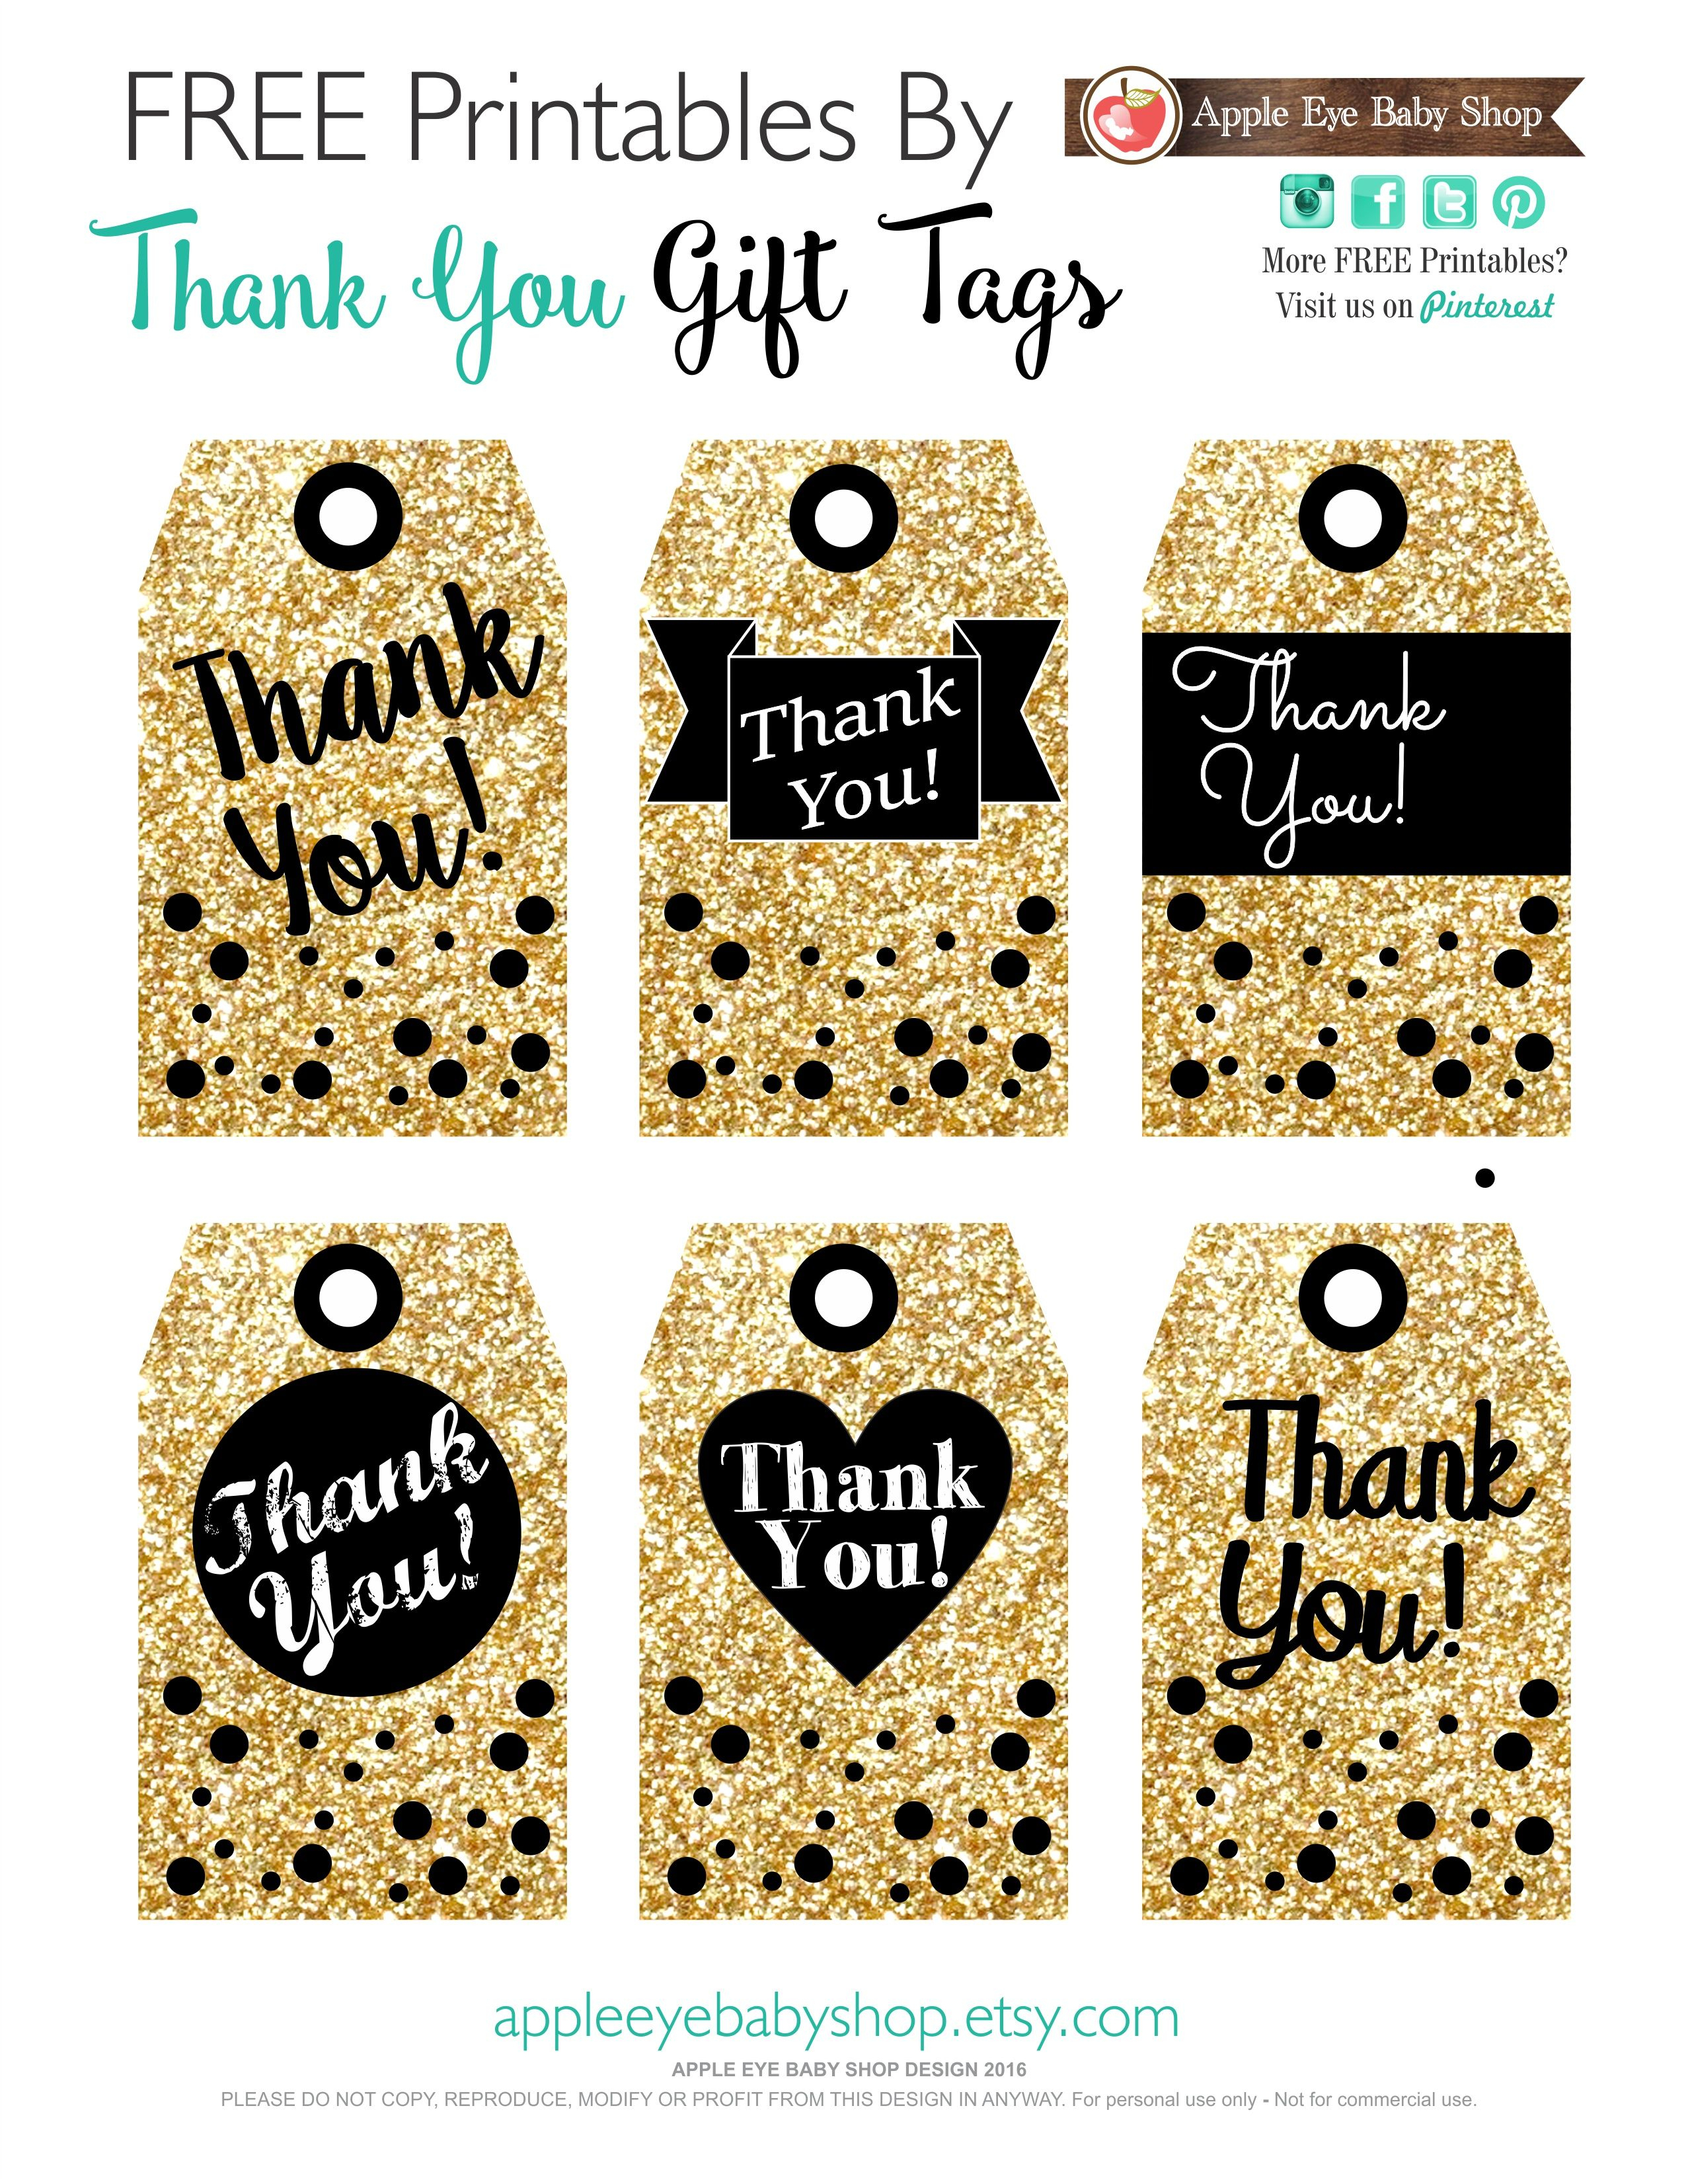 Printables Gift Tags Gold Glitter & Black | I ♥ Packaging + Wrap - Free Printable Thank You Tags For Birthdays